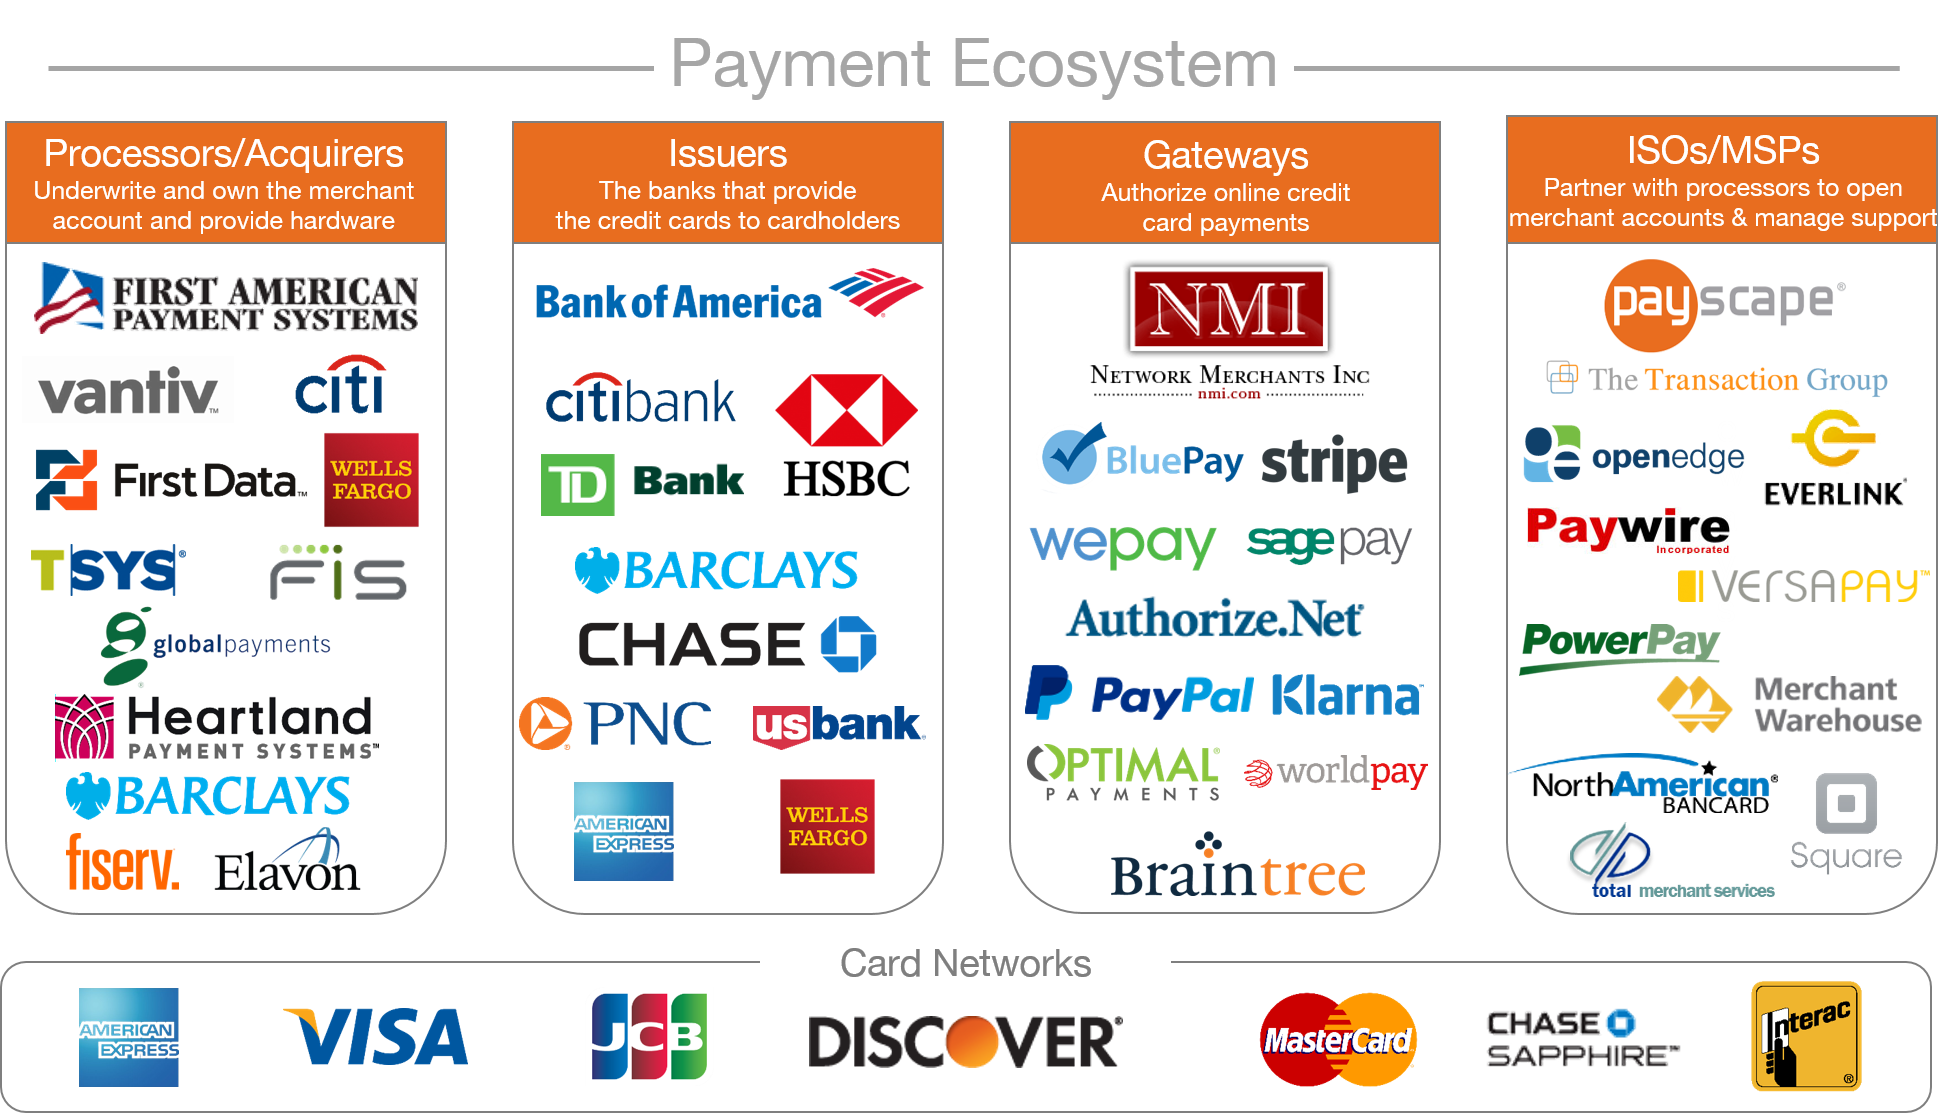 Payment Ecosystem - 2015